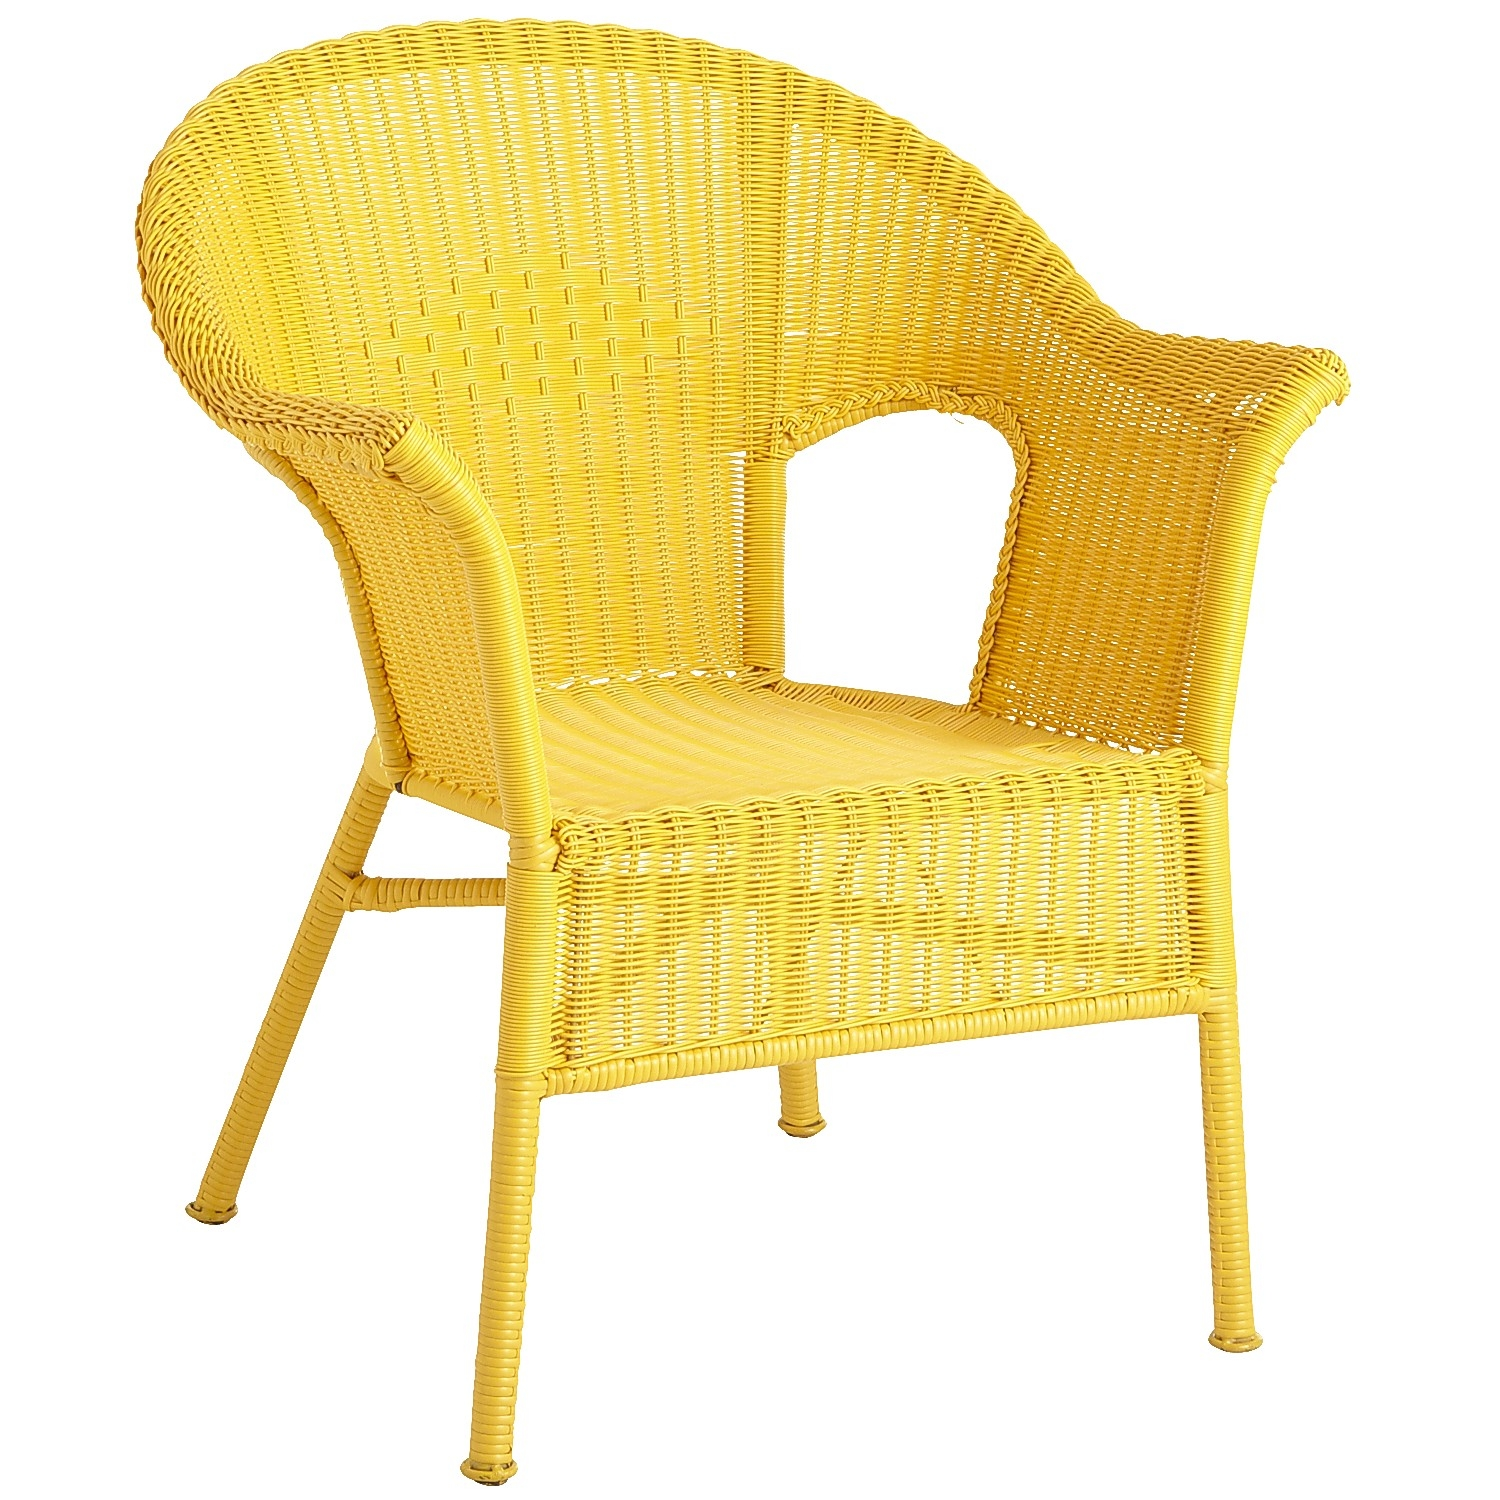 Stackable wicker chairs 6